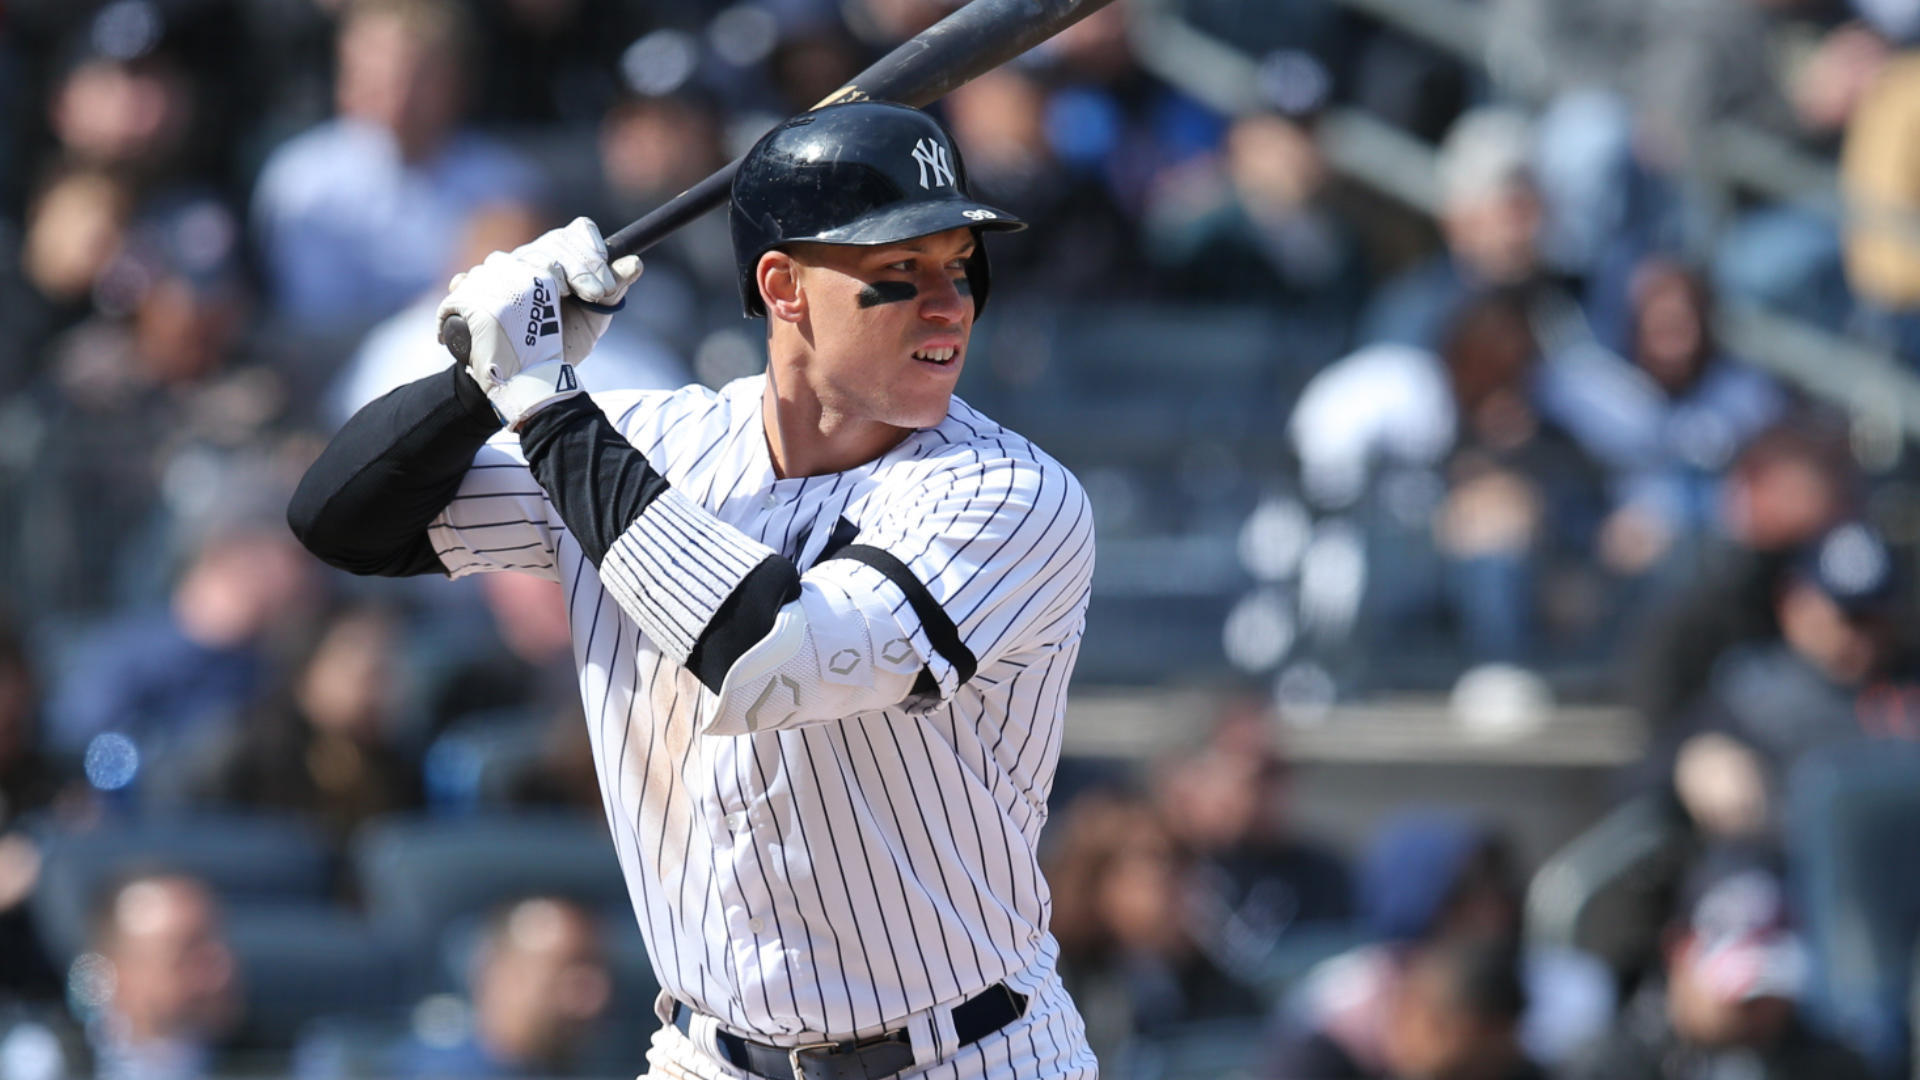 Clint Frazier is keeping the hobbled Yankees afloat, and a minor adjustment has bolstered his MLB breakout